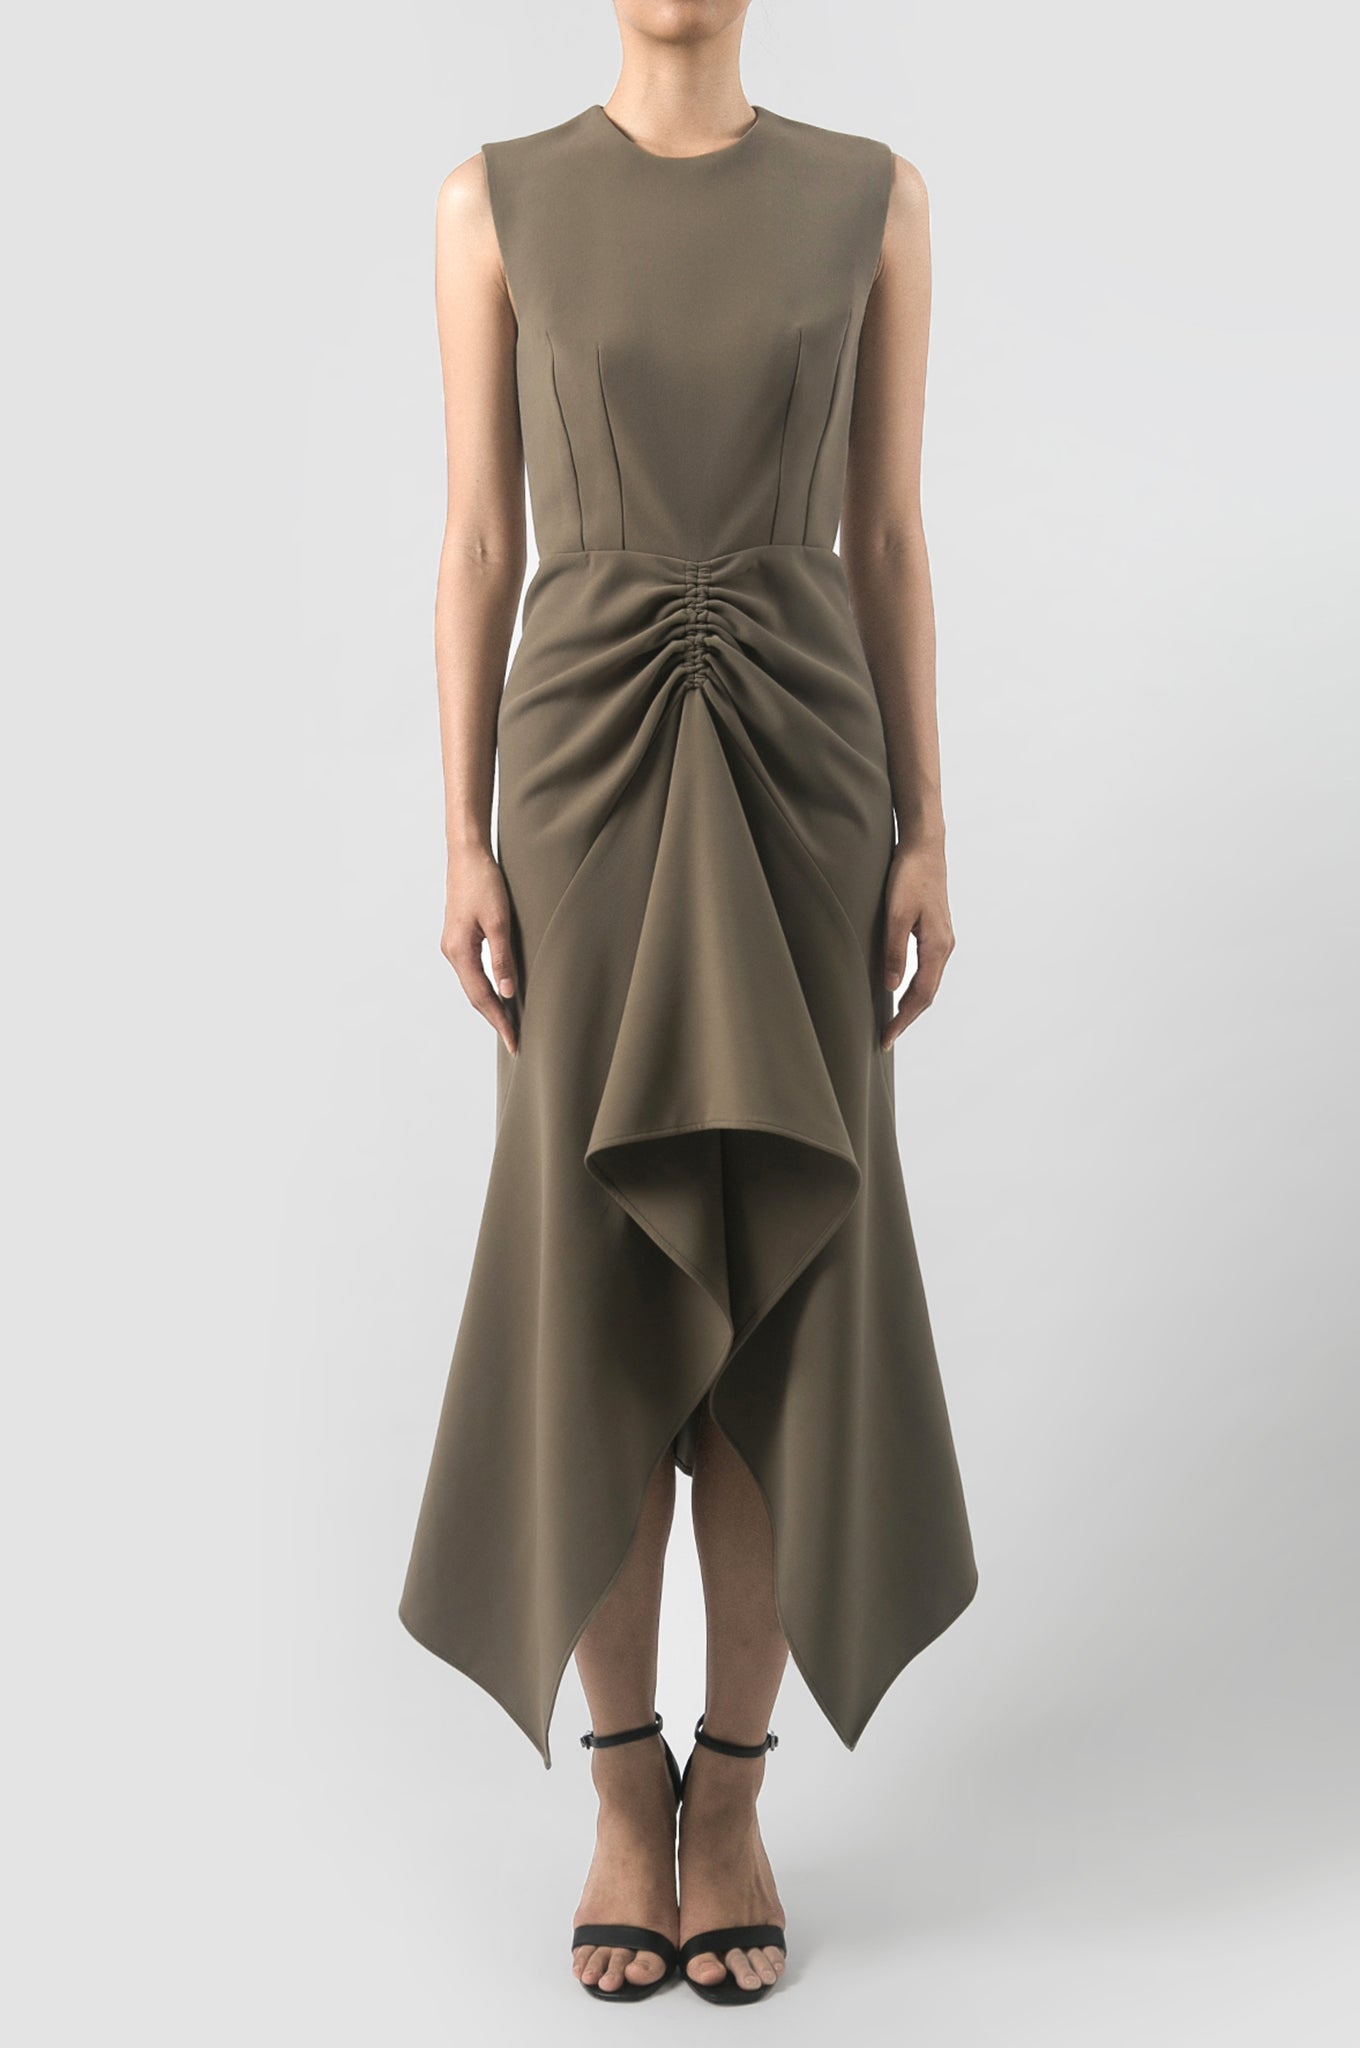 Kelp Green Erosion Dress